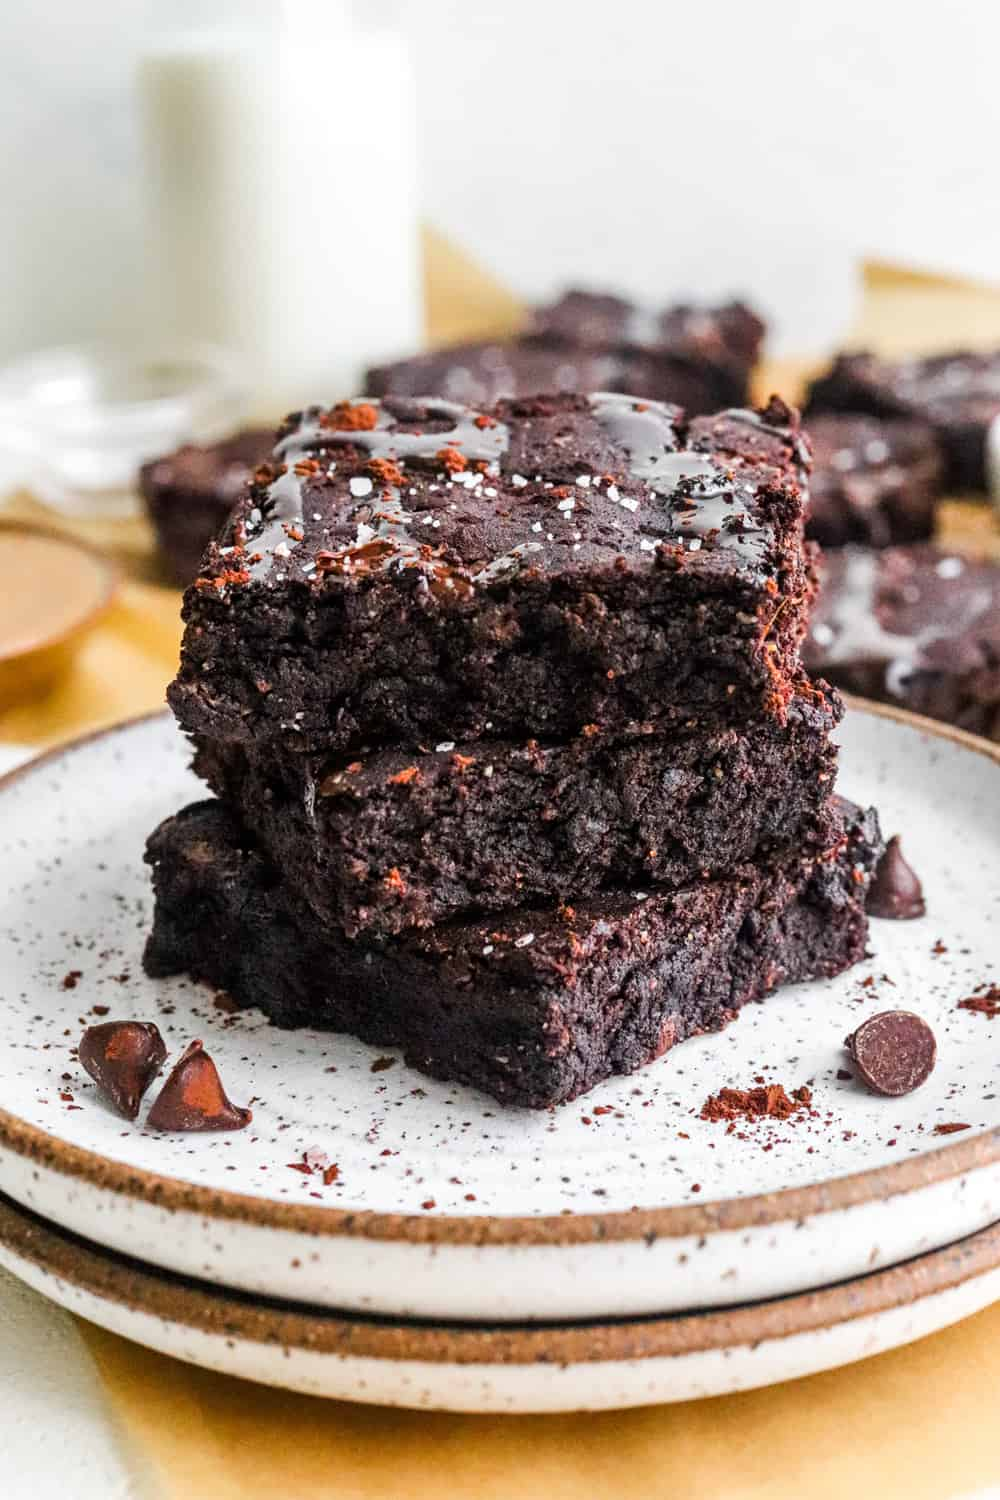 stack of fudgy brownies on a specked white plate with more brownies behind it.